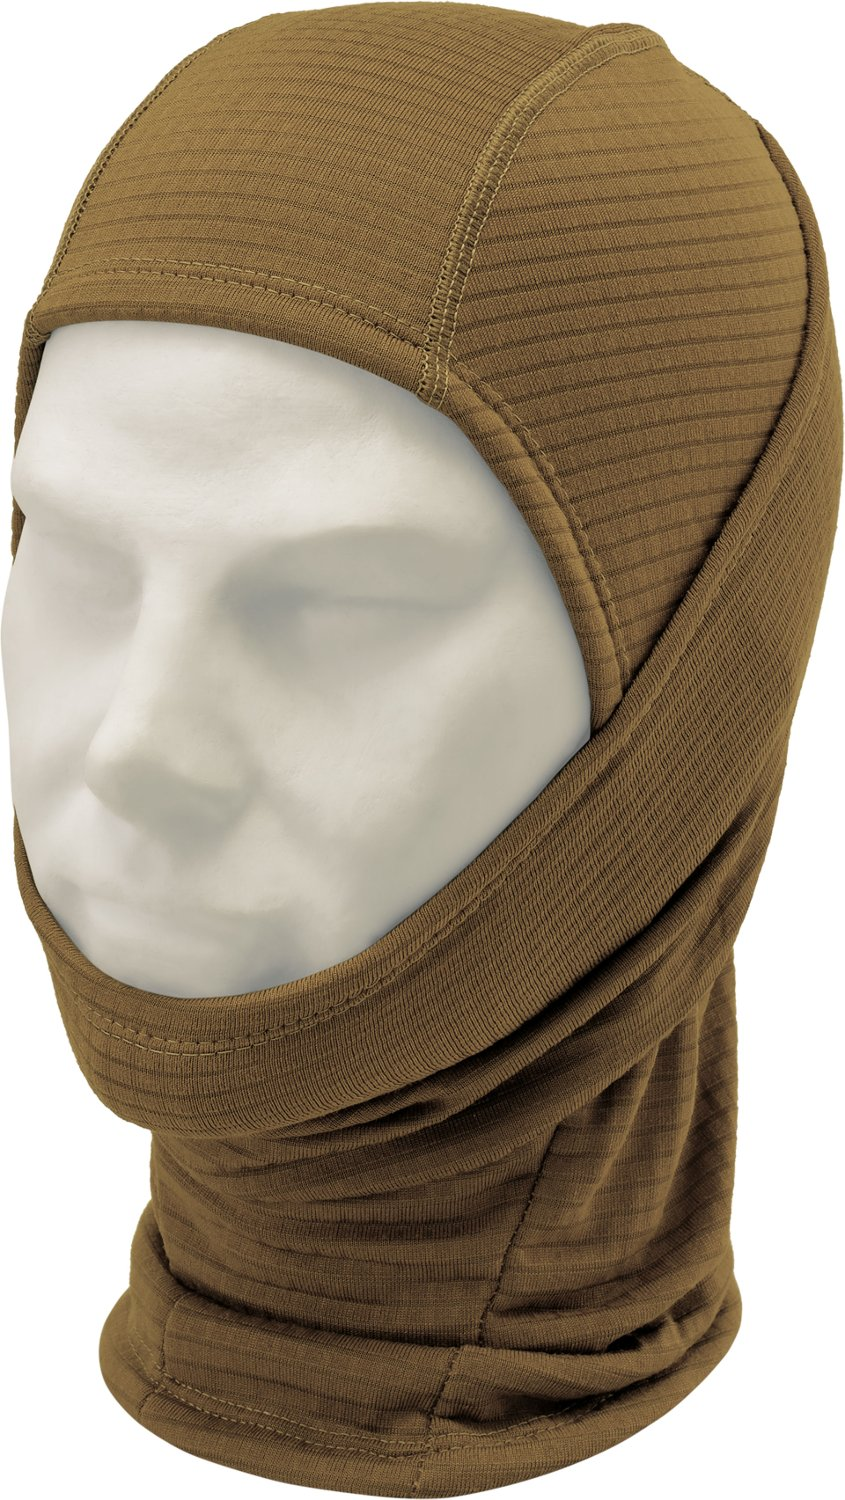 PASSAMONTAGNA THERMAL MULTI COLLAR DEFCON 5 D5-1939/2 OD COYOTE TAN